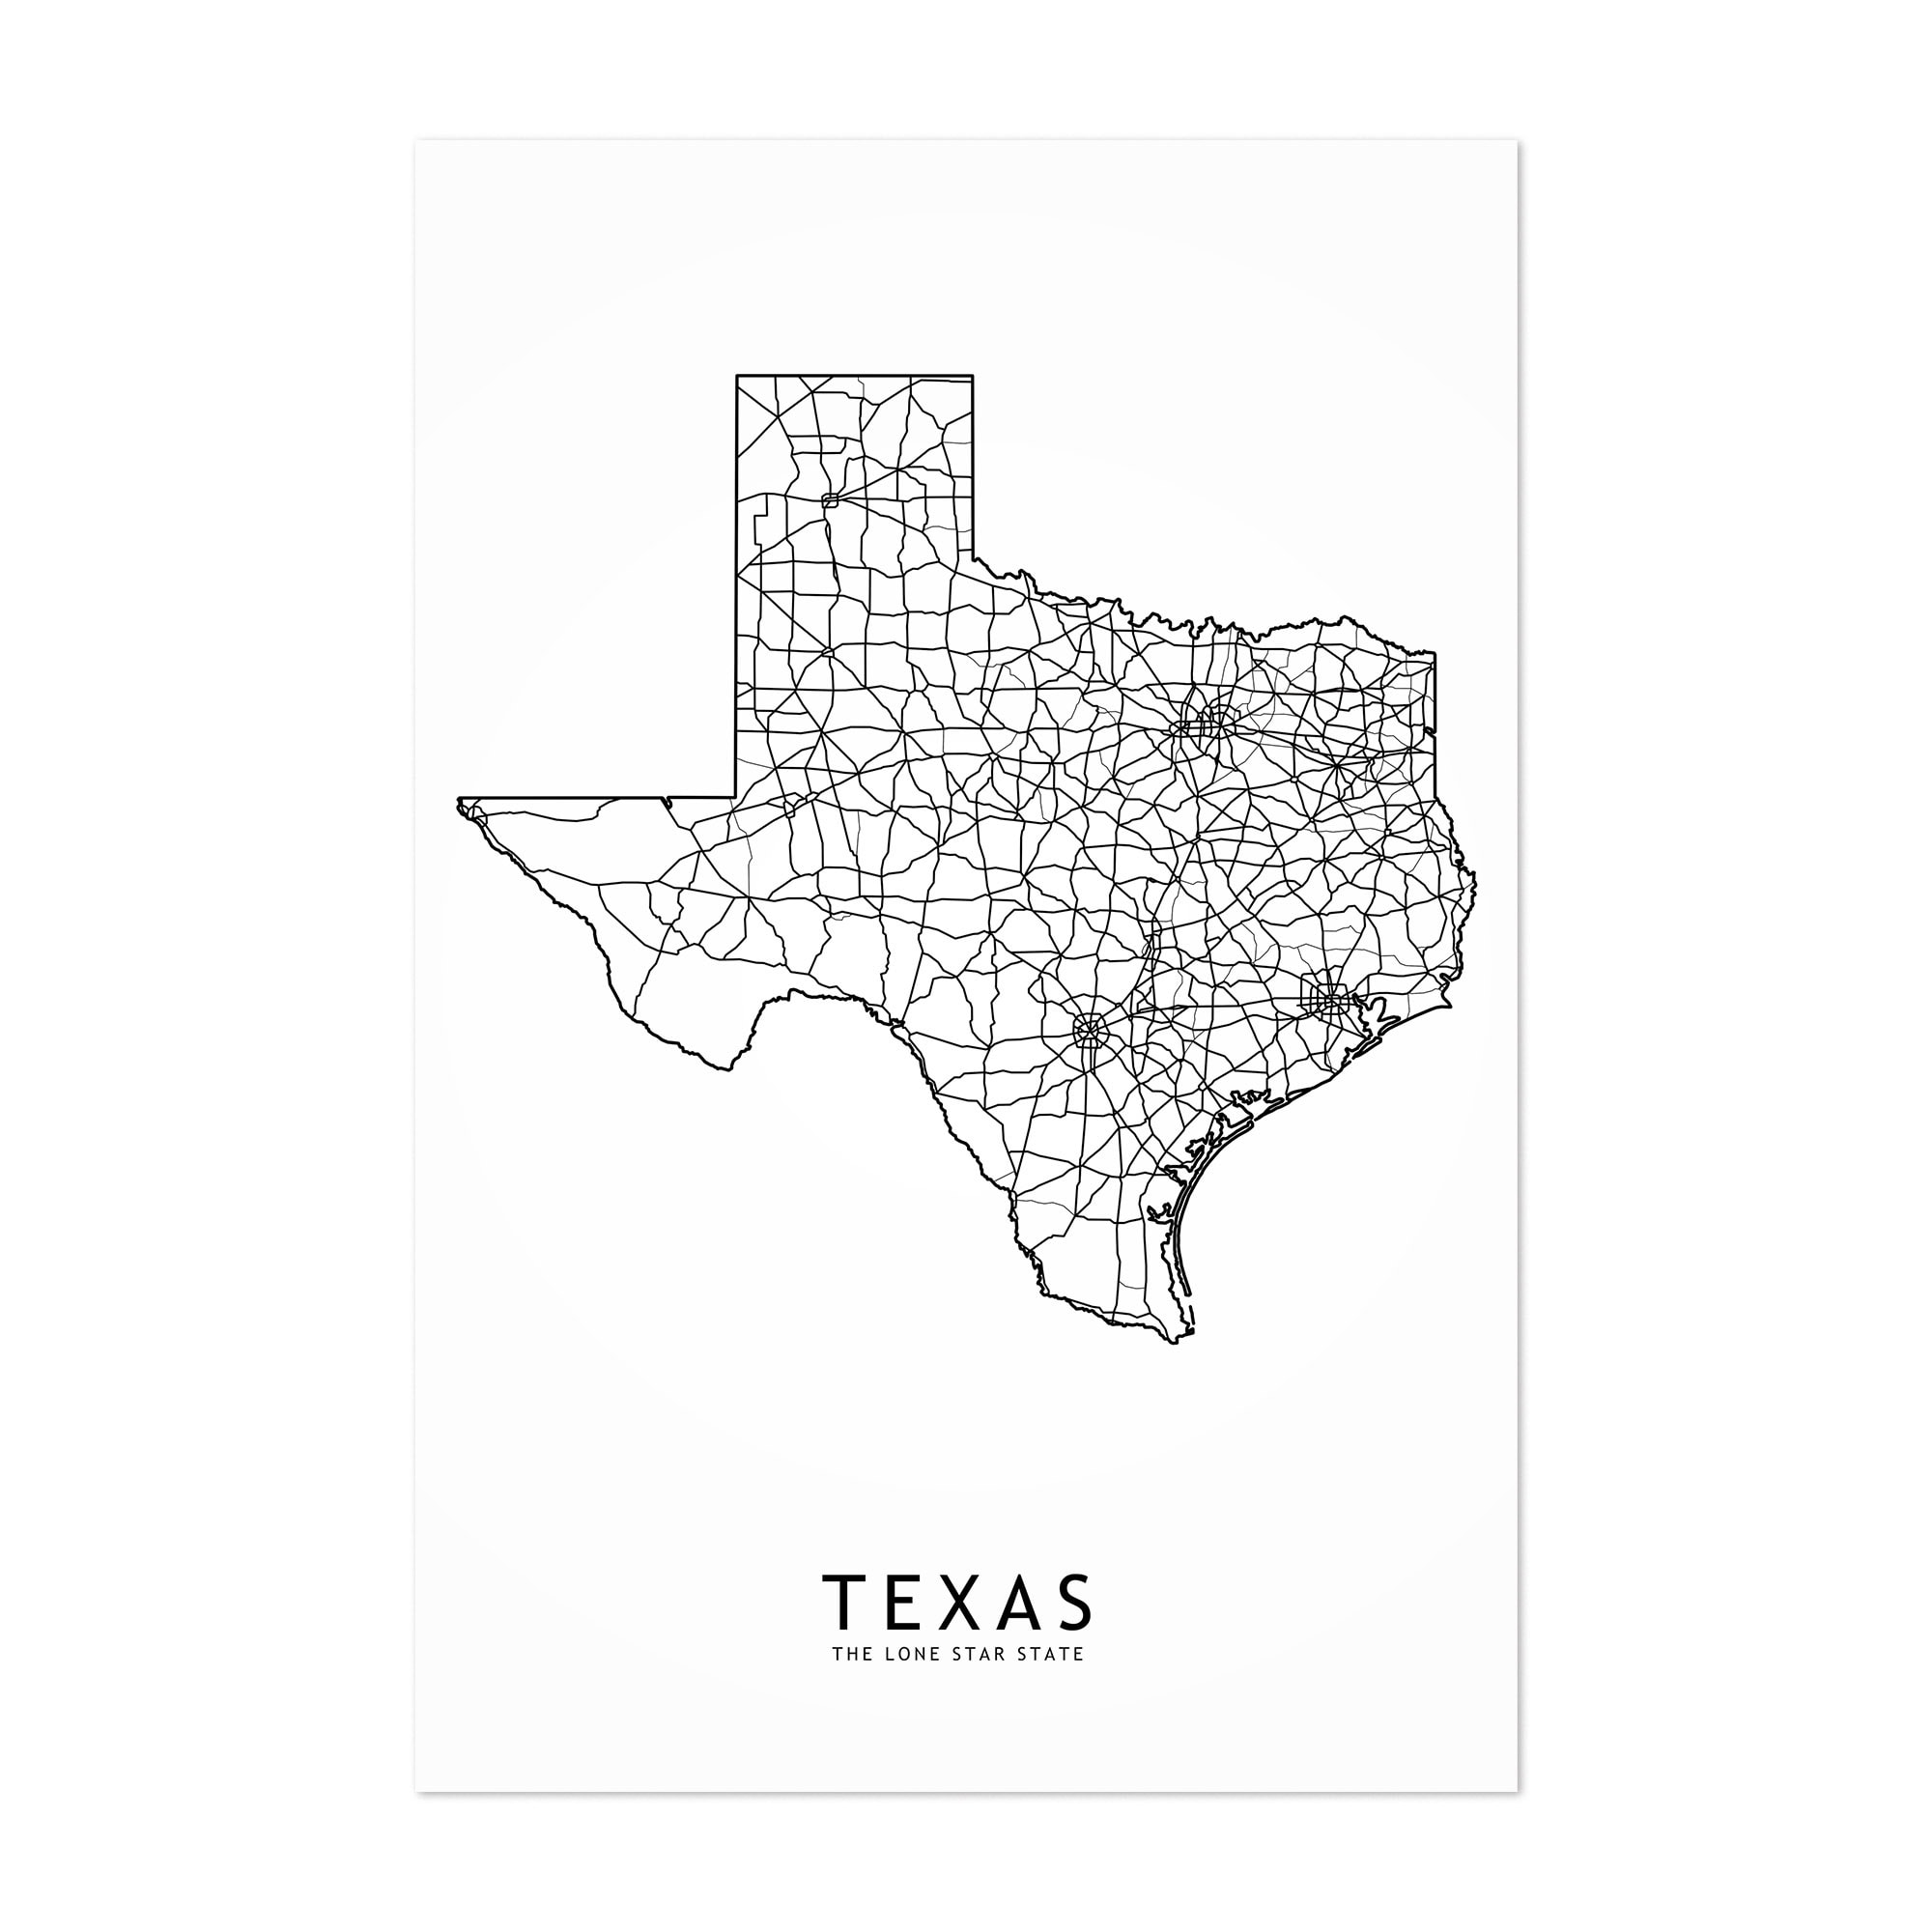 graphic about Printable Maps of Texas called Noir Gallery Texas Black White Country Map Unframed Artwork Print/Poster